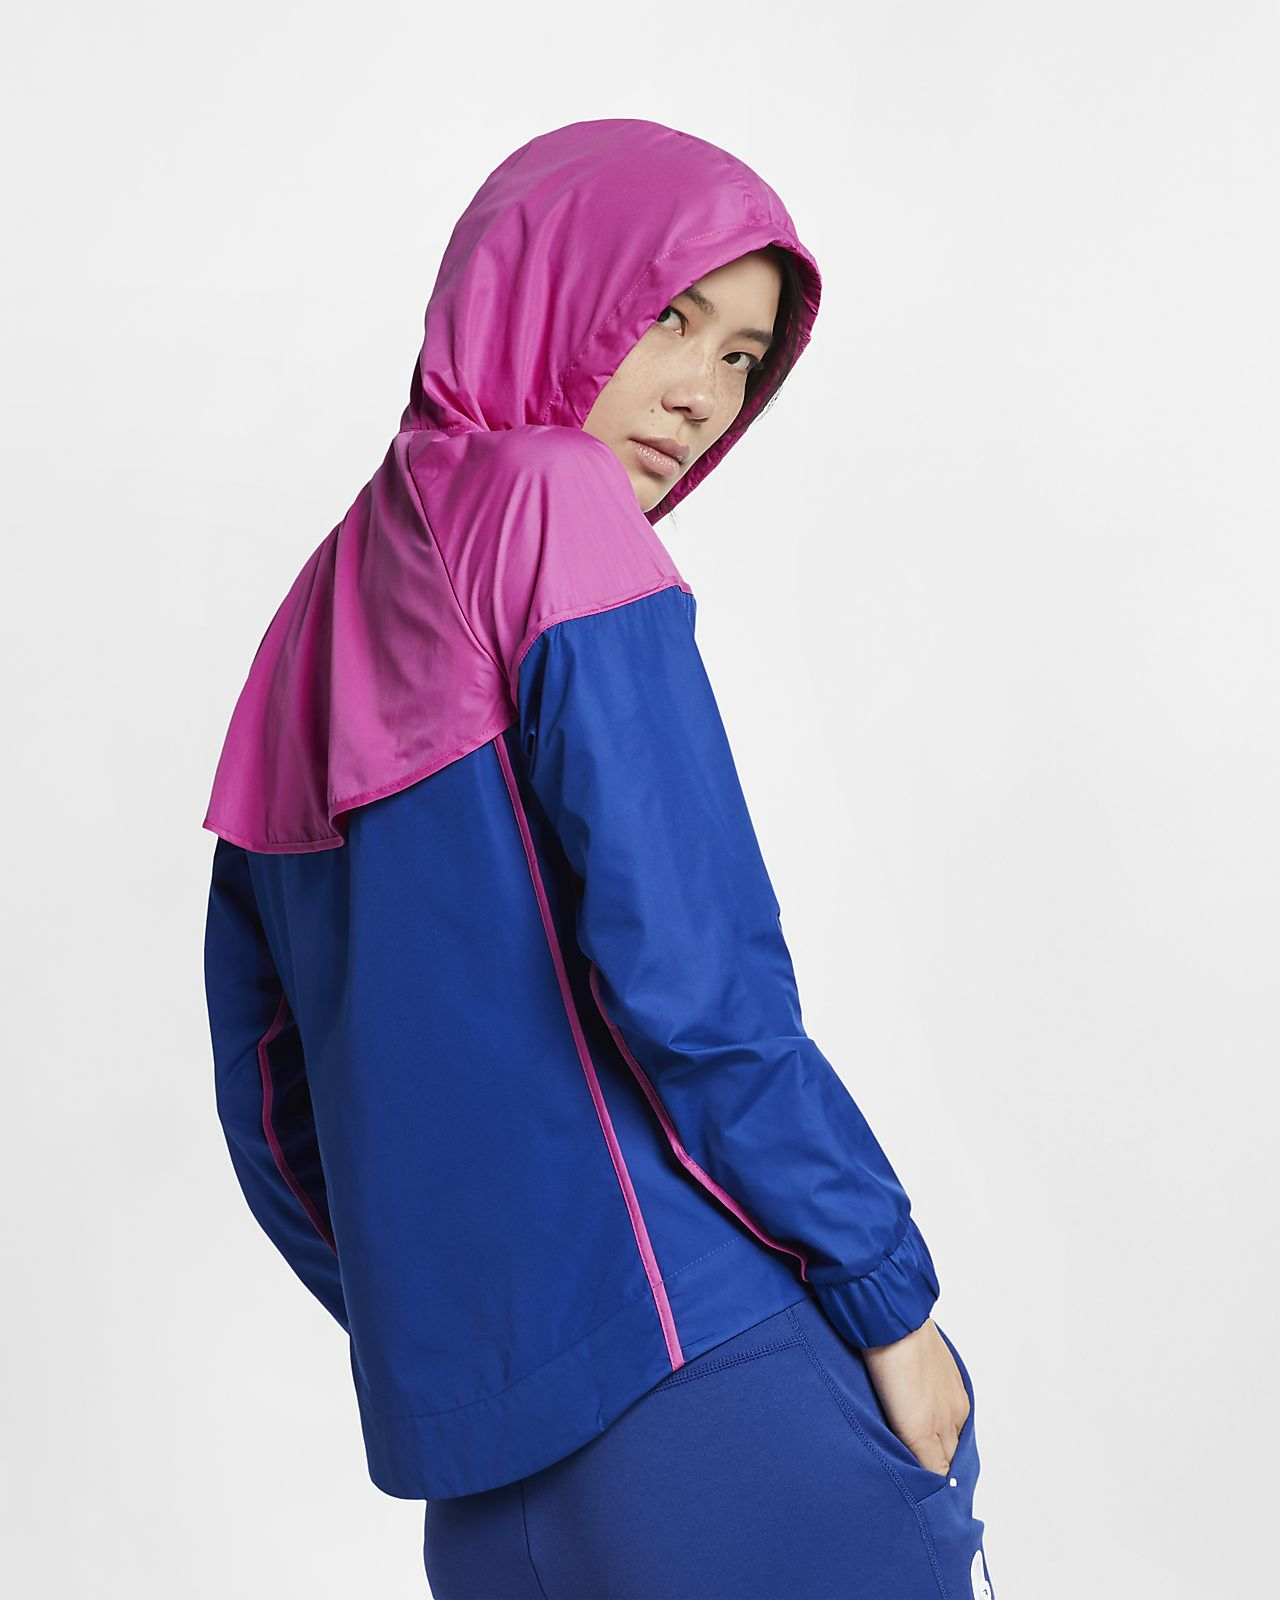 34c8289b224 Low Resolution Nike Sportswear Windrunner Women s Woven Windbreaker Nike  Sportswear Windrunner Women s Woven Windbreaker